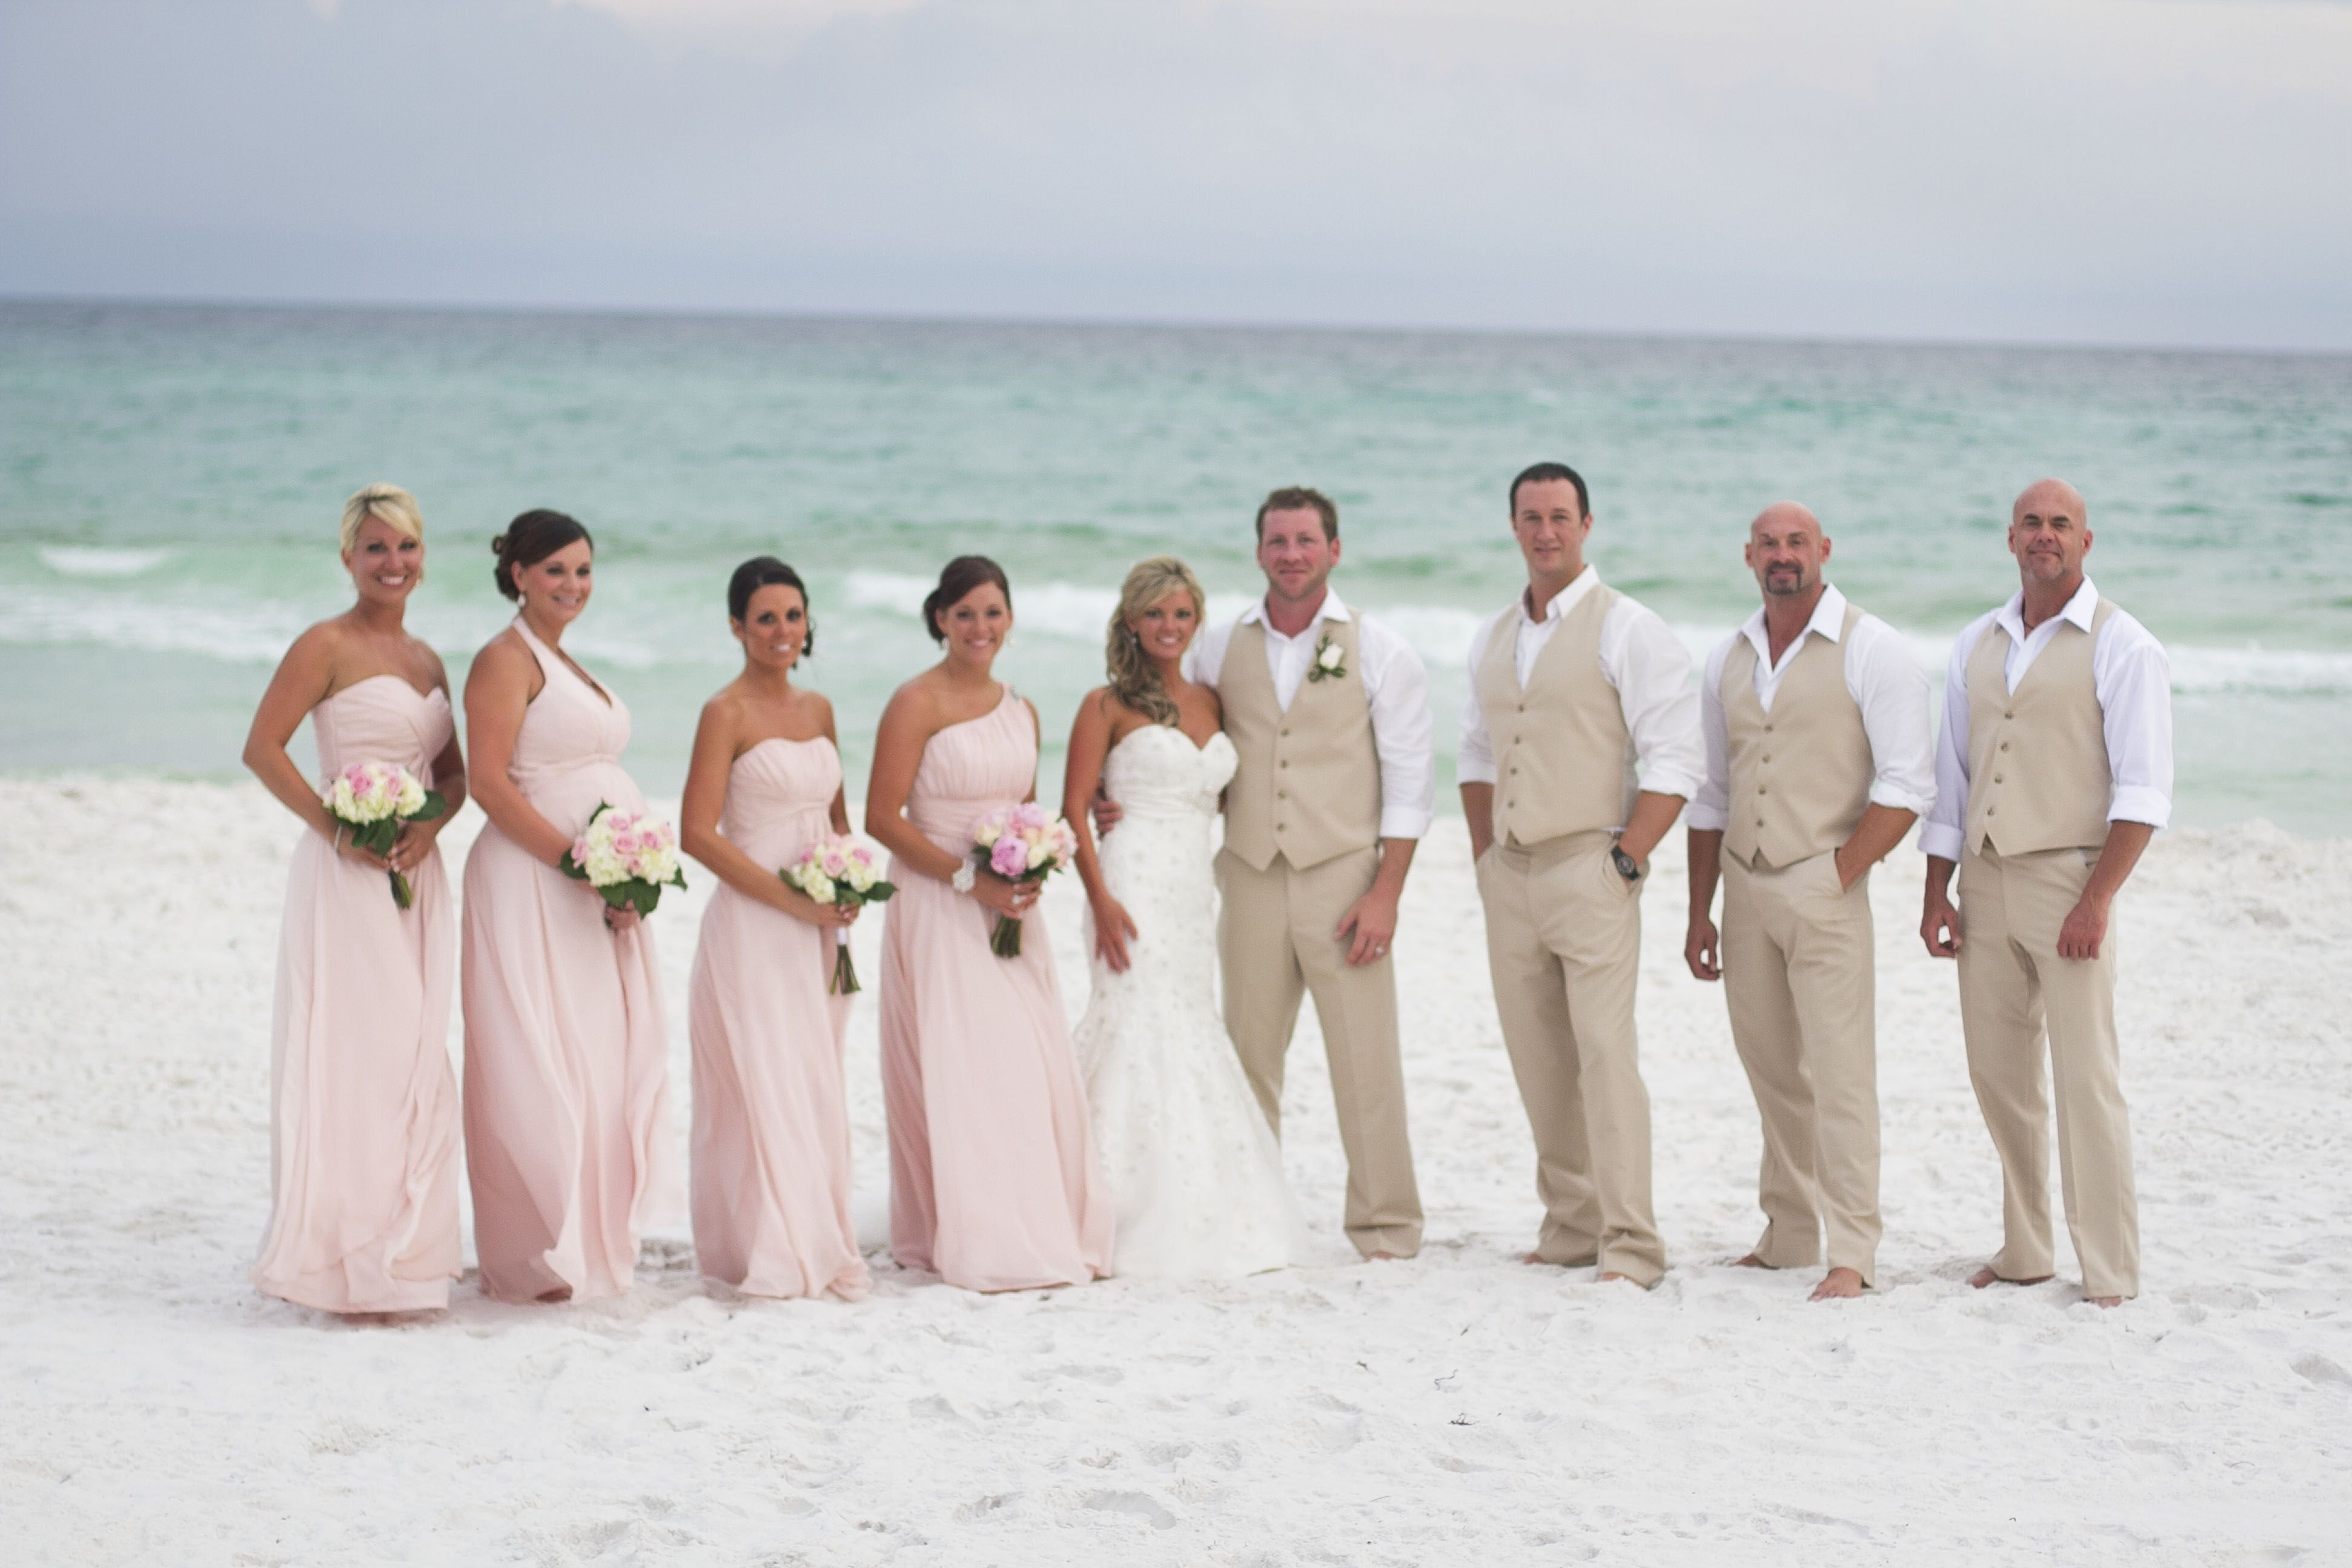 10 Attractive Mens Beach Wedding Attire Ideas